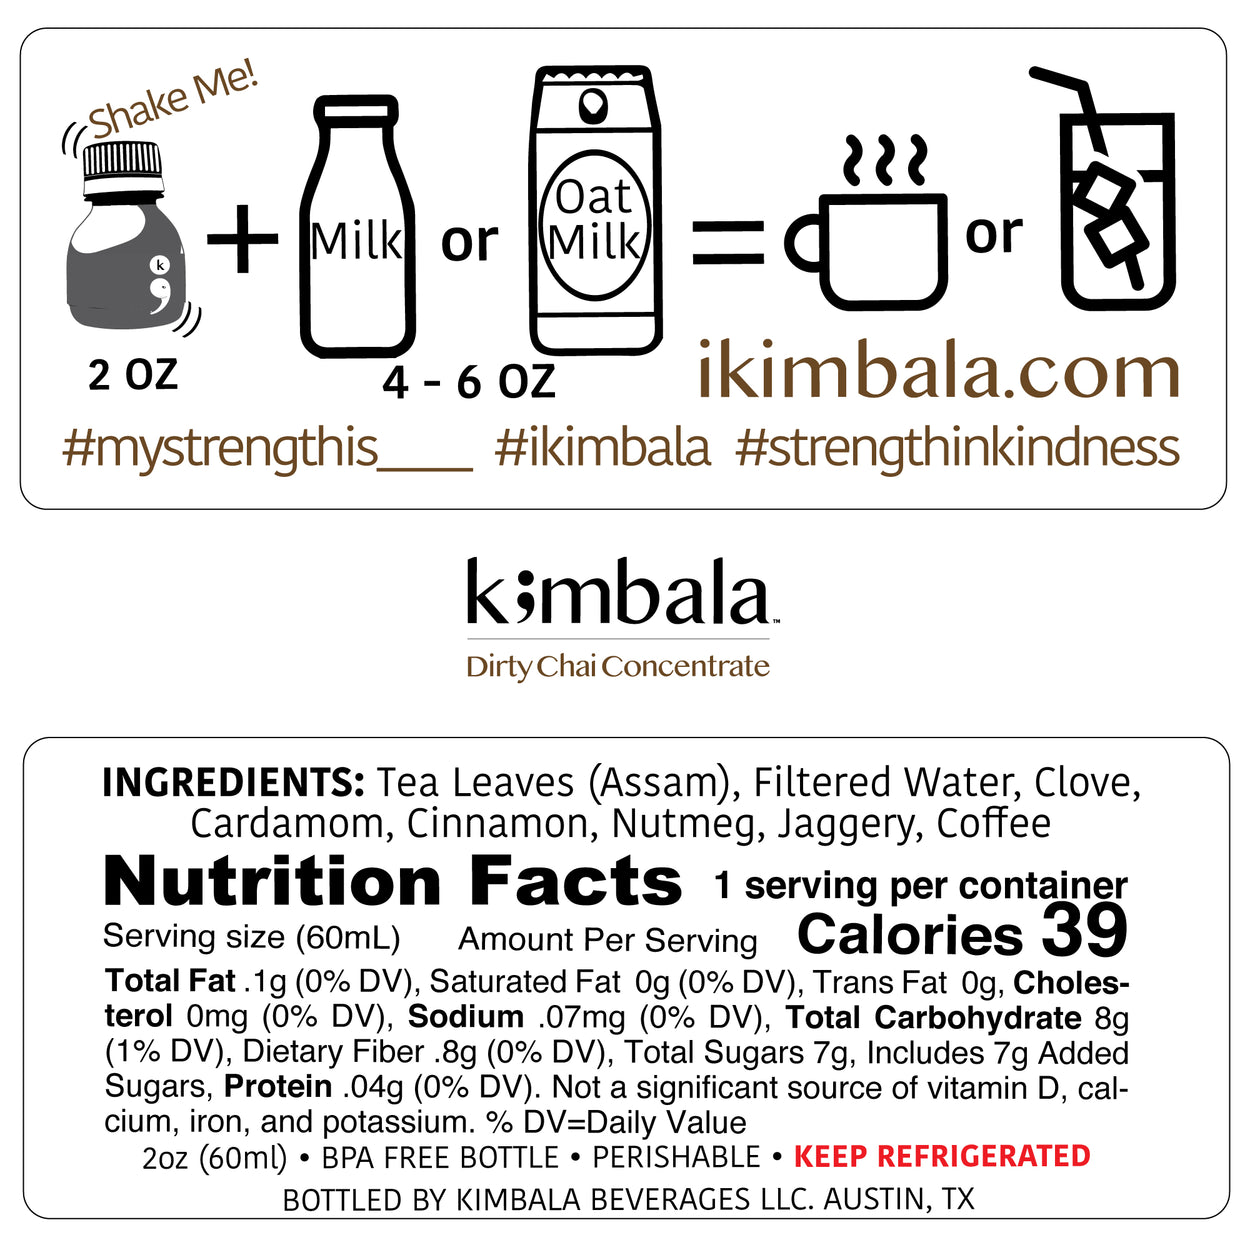 Kimbala dirty chai concentrate nutrition facts for 2oz bottle